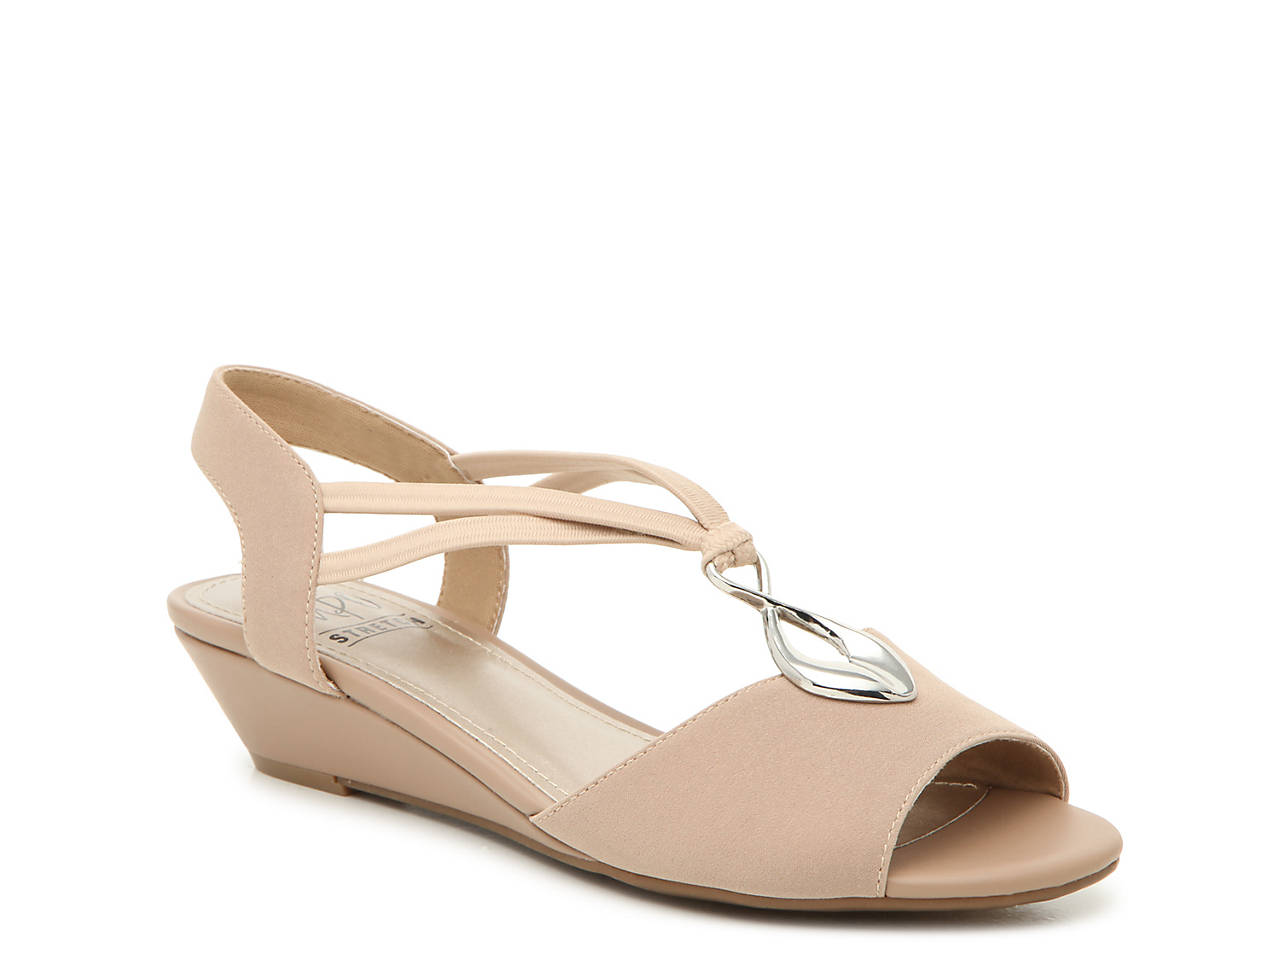 7209f821edd Impo Robee Wedge Sandal Women s Shoes